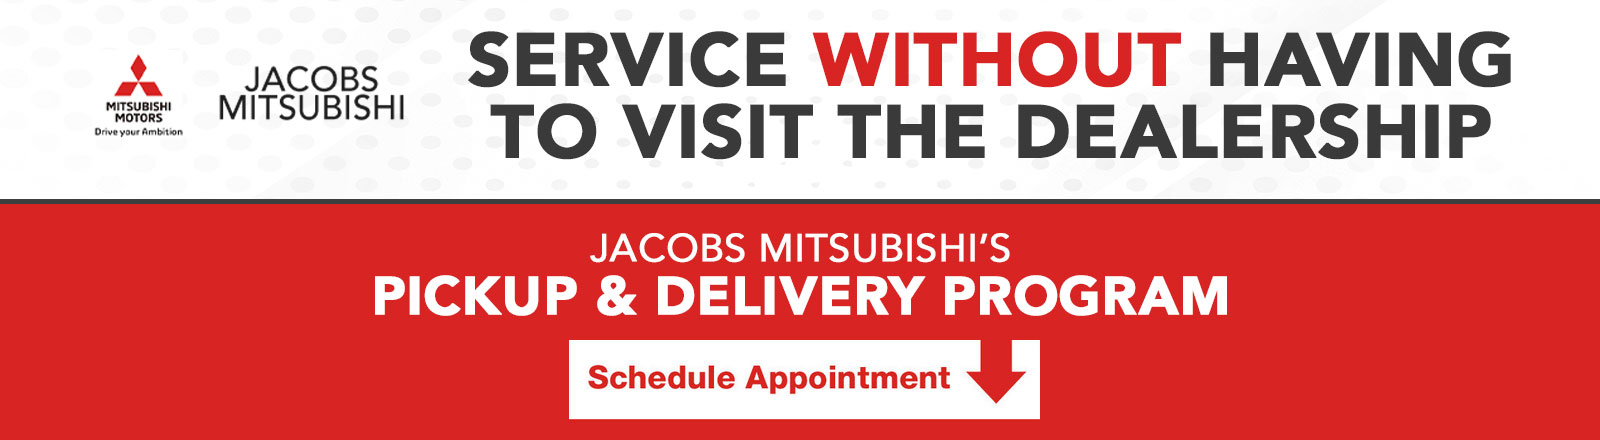 Service Without Having To Visit The Dealership | Jacobs Mitsubishi's Pickup & Delivery Program